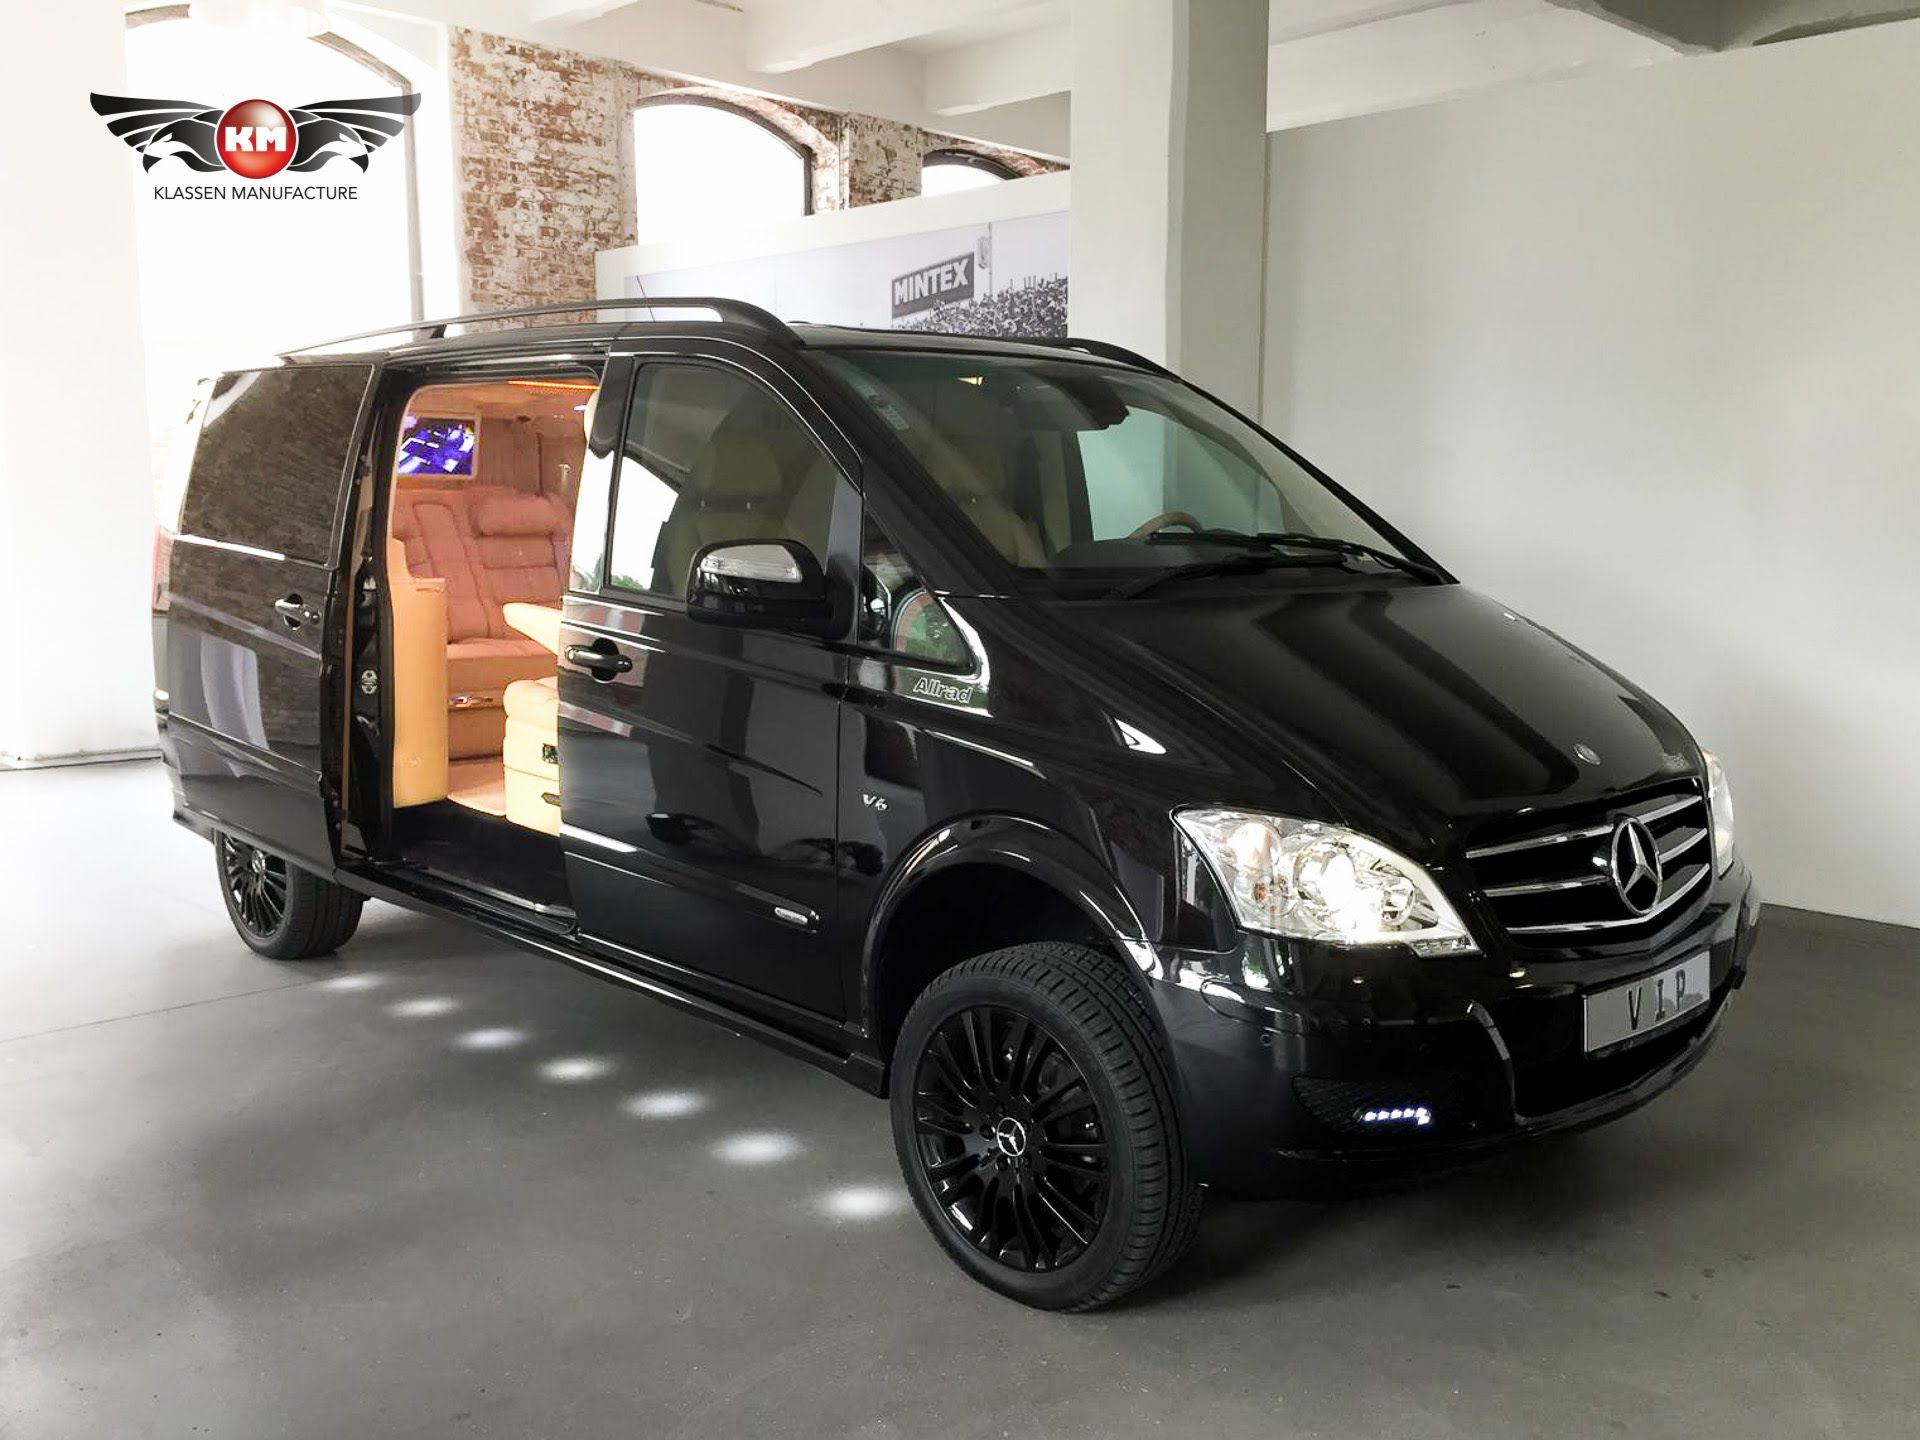 mercedes benz viano 3 5 v6 4matic vip edition luxury van. Black Bedroom Furniture Sets. Home Design Ideas